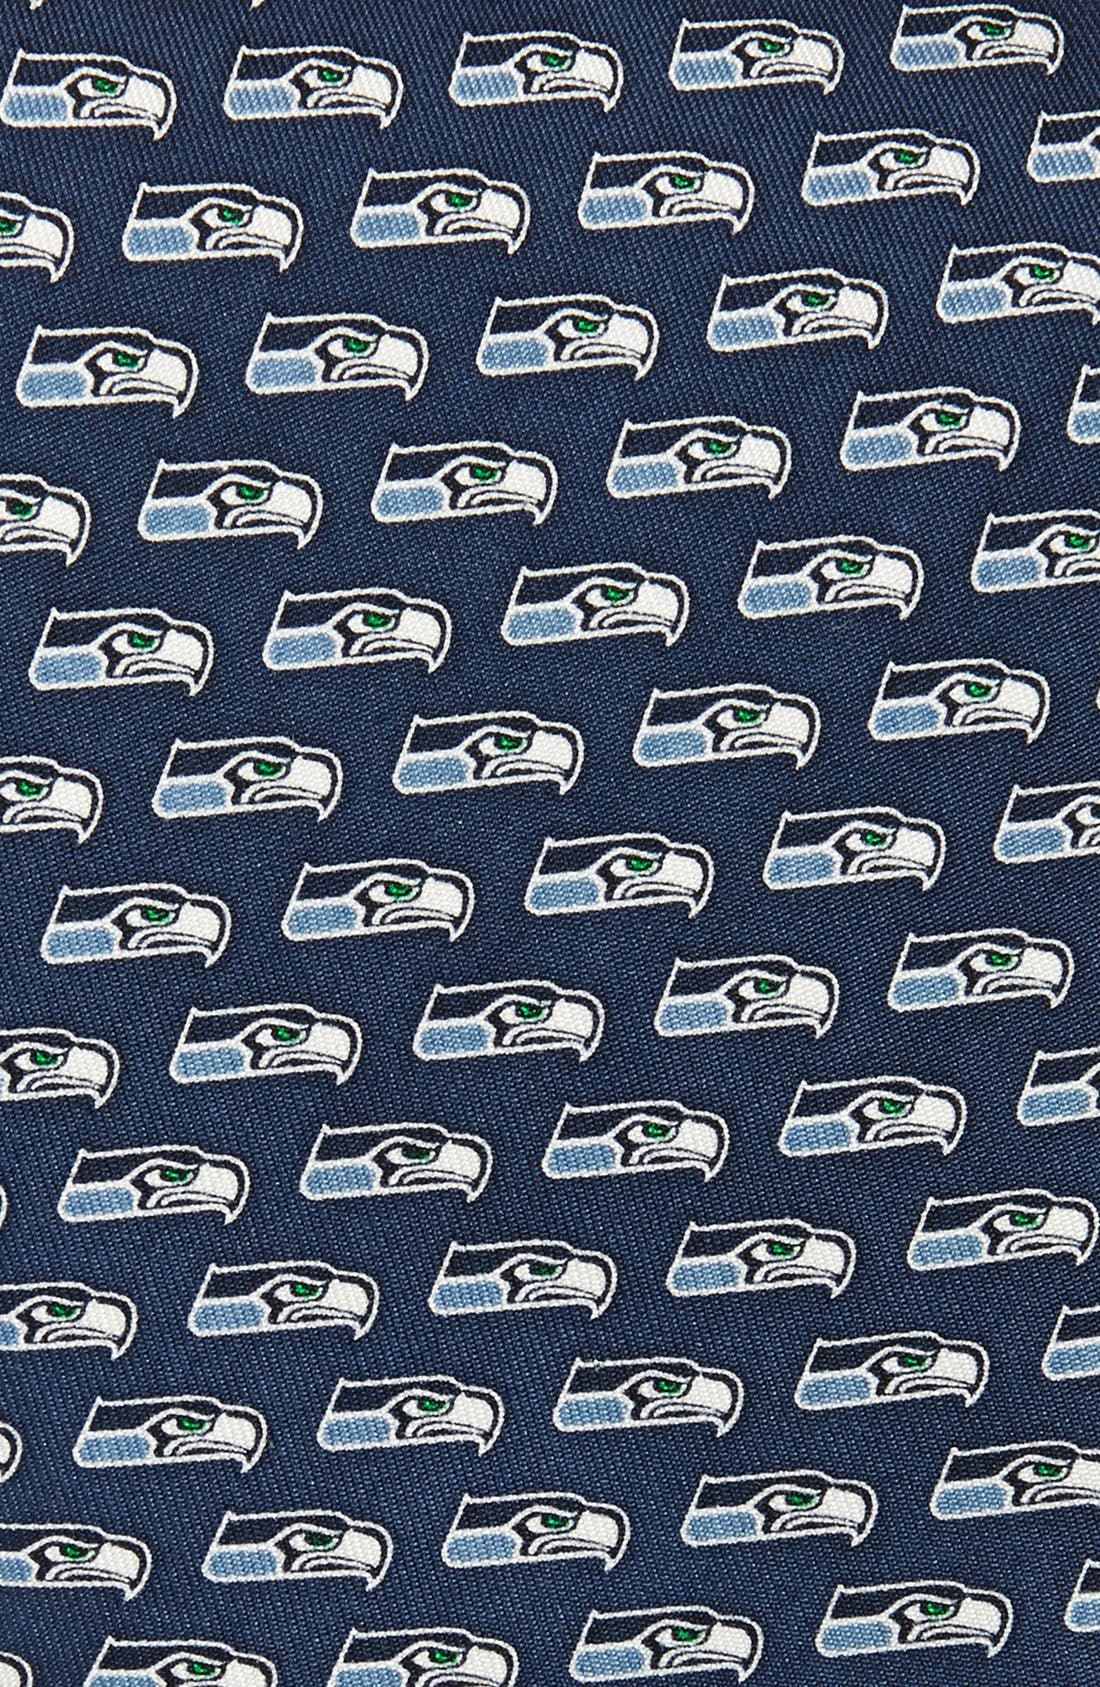 Seattle Seahawks - NFL Woven Silk Tie,                             Alternate thumbnail 2, color,                             414